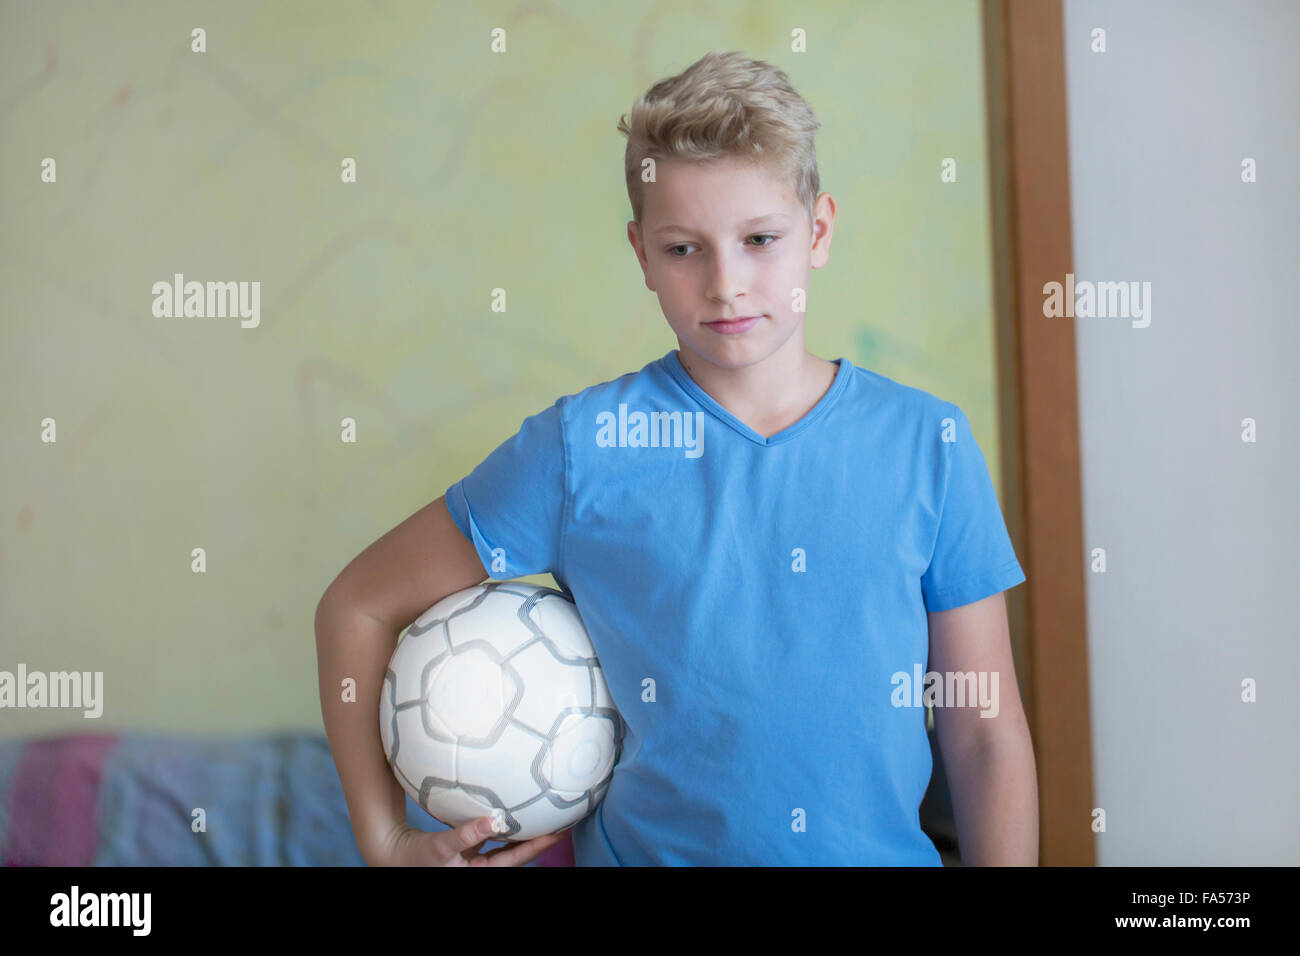 Boy holding football under his arm and looking down, Freiburg im Breisgau, Baden-Württemberg, Germany - Stock Image